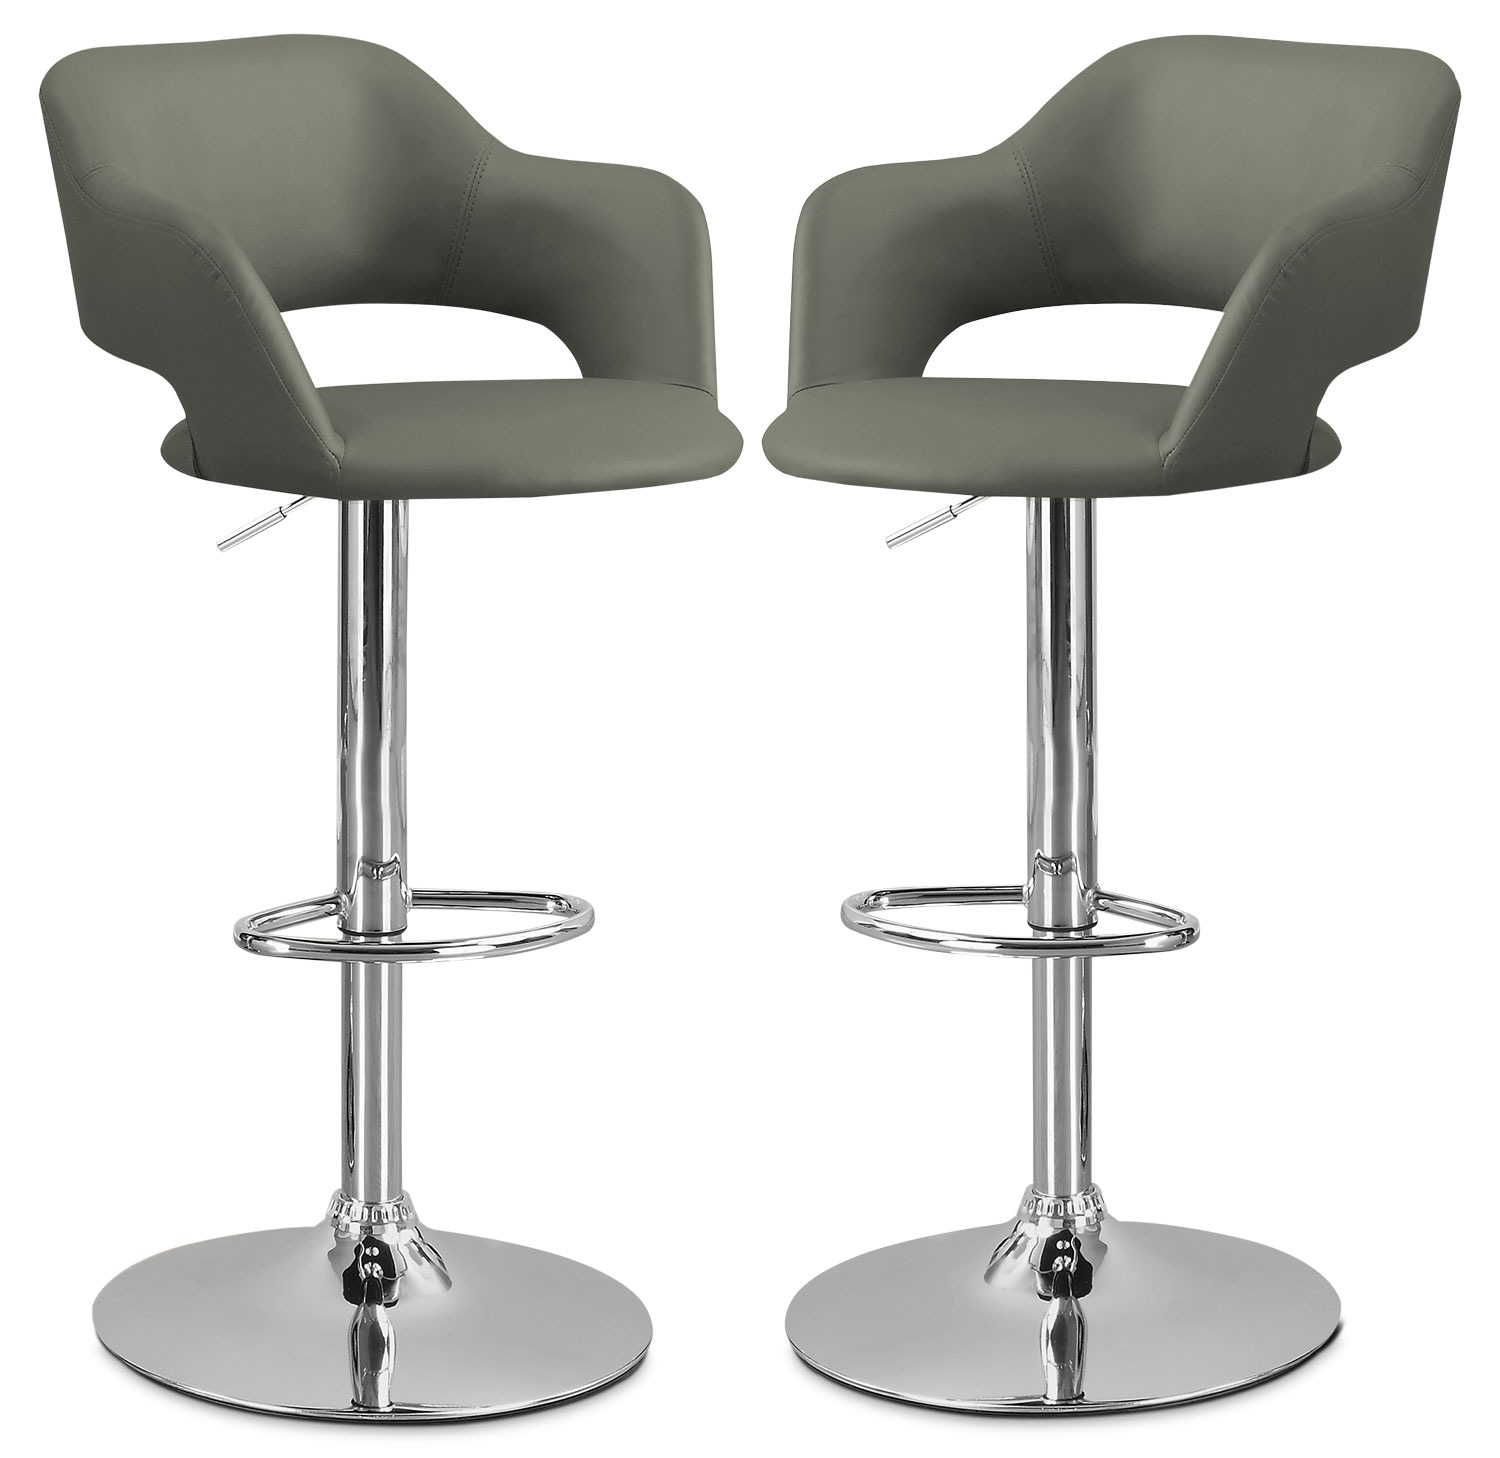 Monarch Hydraulic Contemporary Bar Stool, Set of 2 – Grey ...